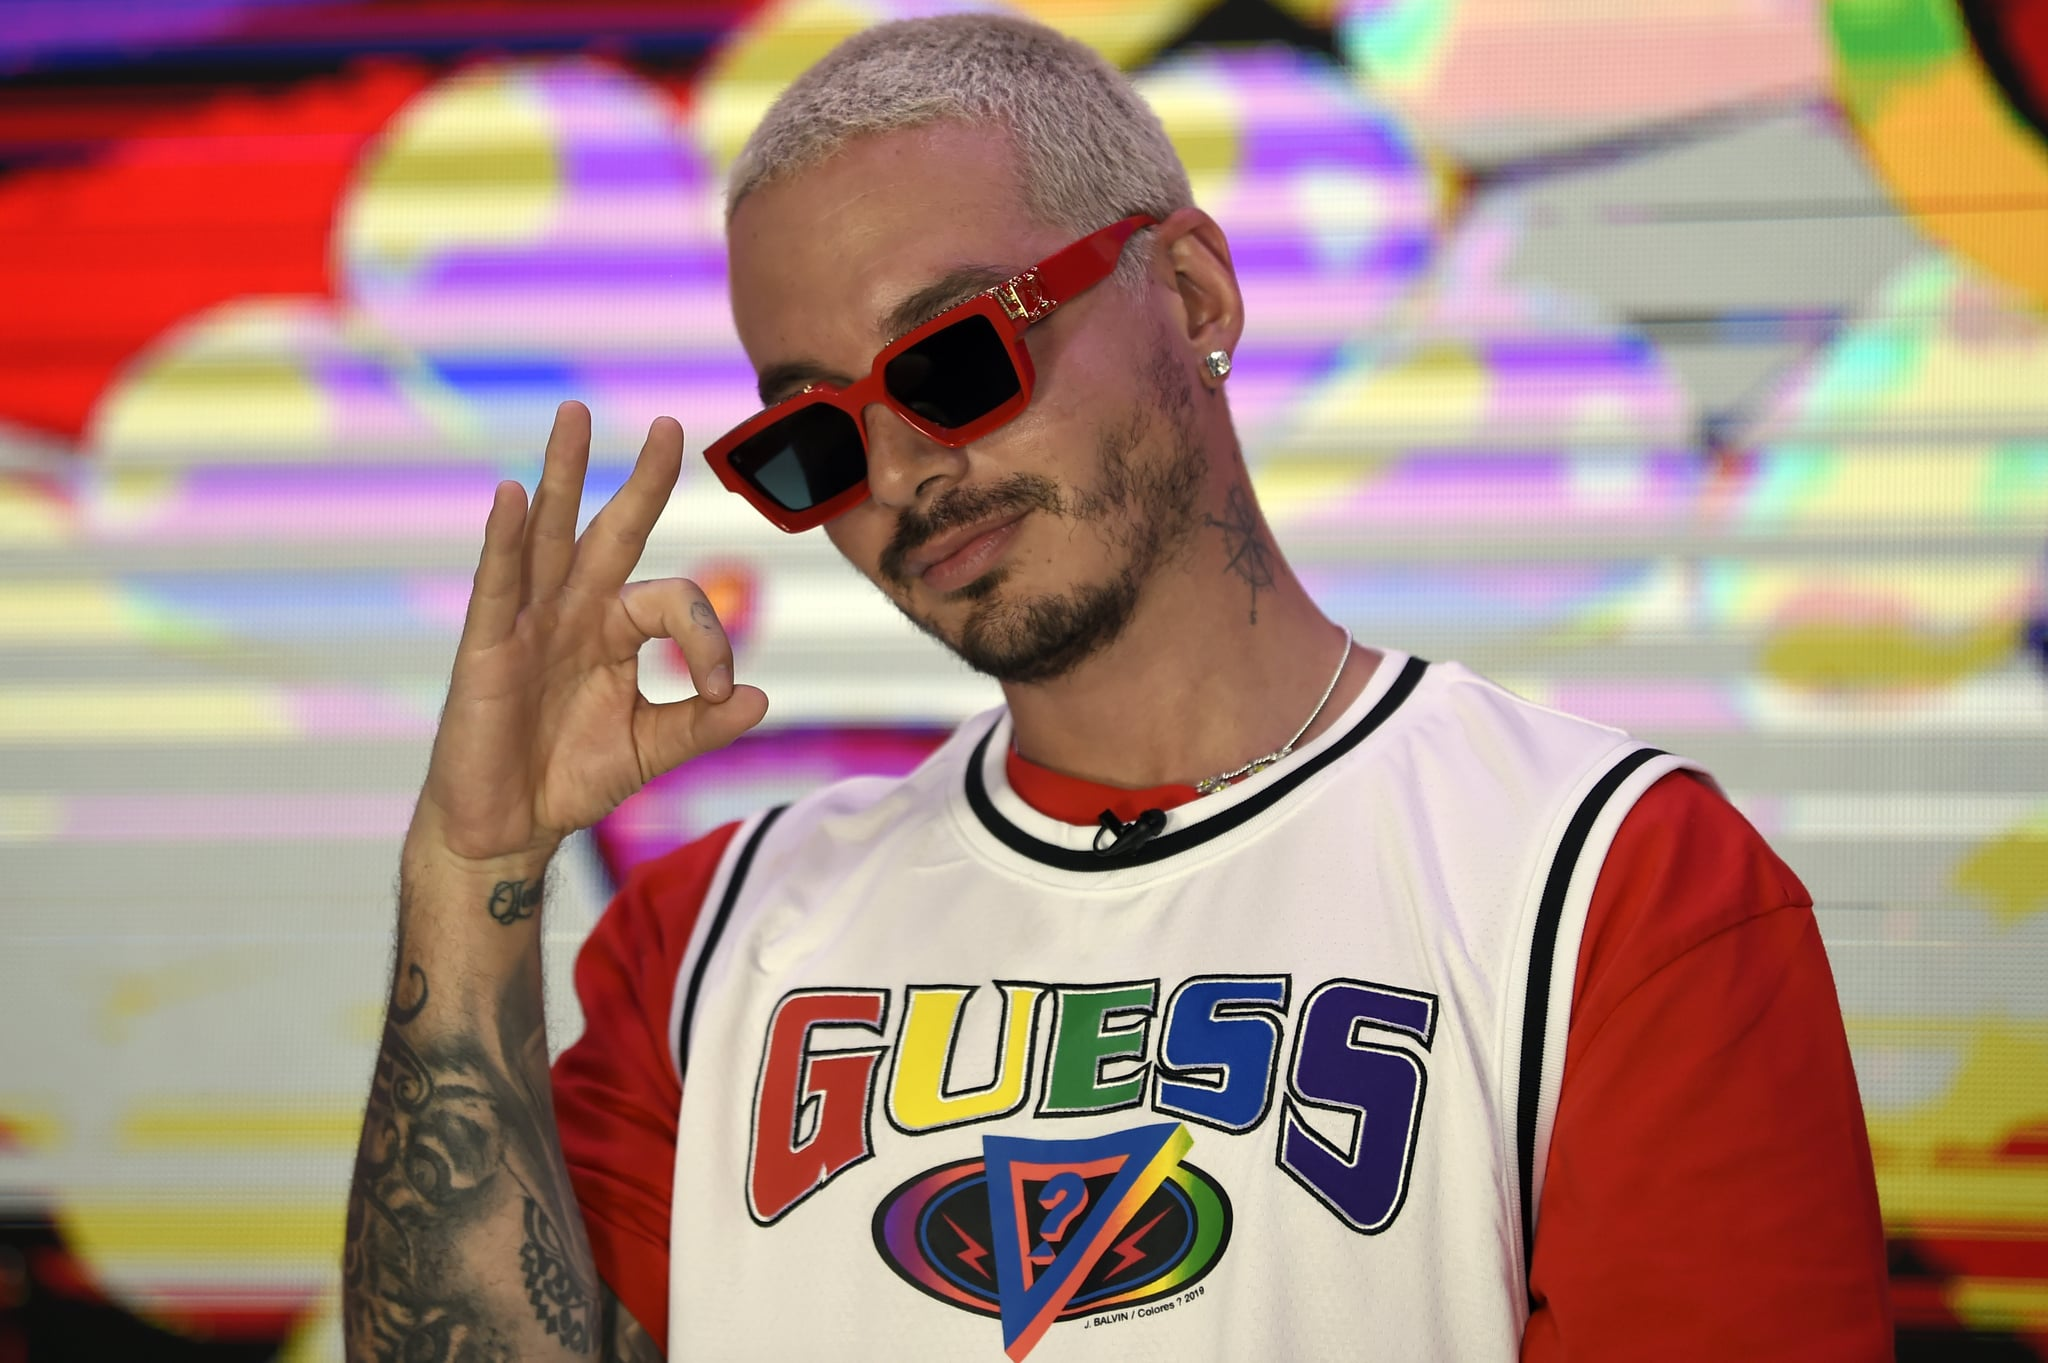 Colombian musician and composer Jose Alvaro Osorio Balvi aka J Balvin poses during a photo call at the Universal Music offices in Mexico City on March 3, 2020. - Colombian musis star J Balvin launched his new album